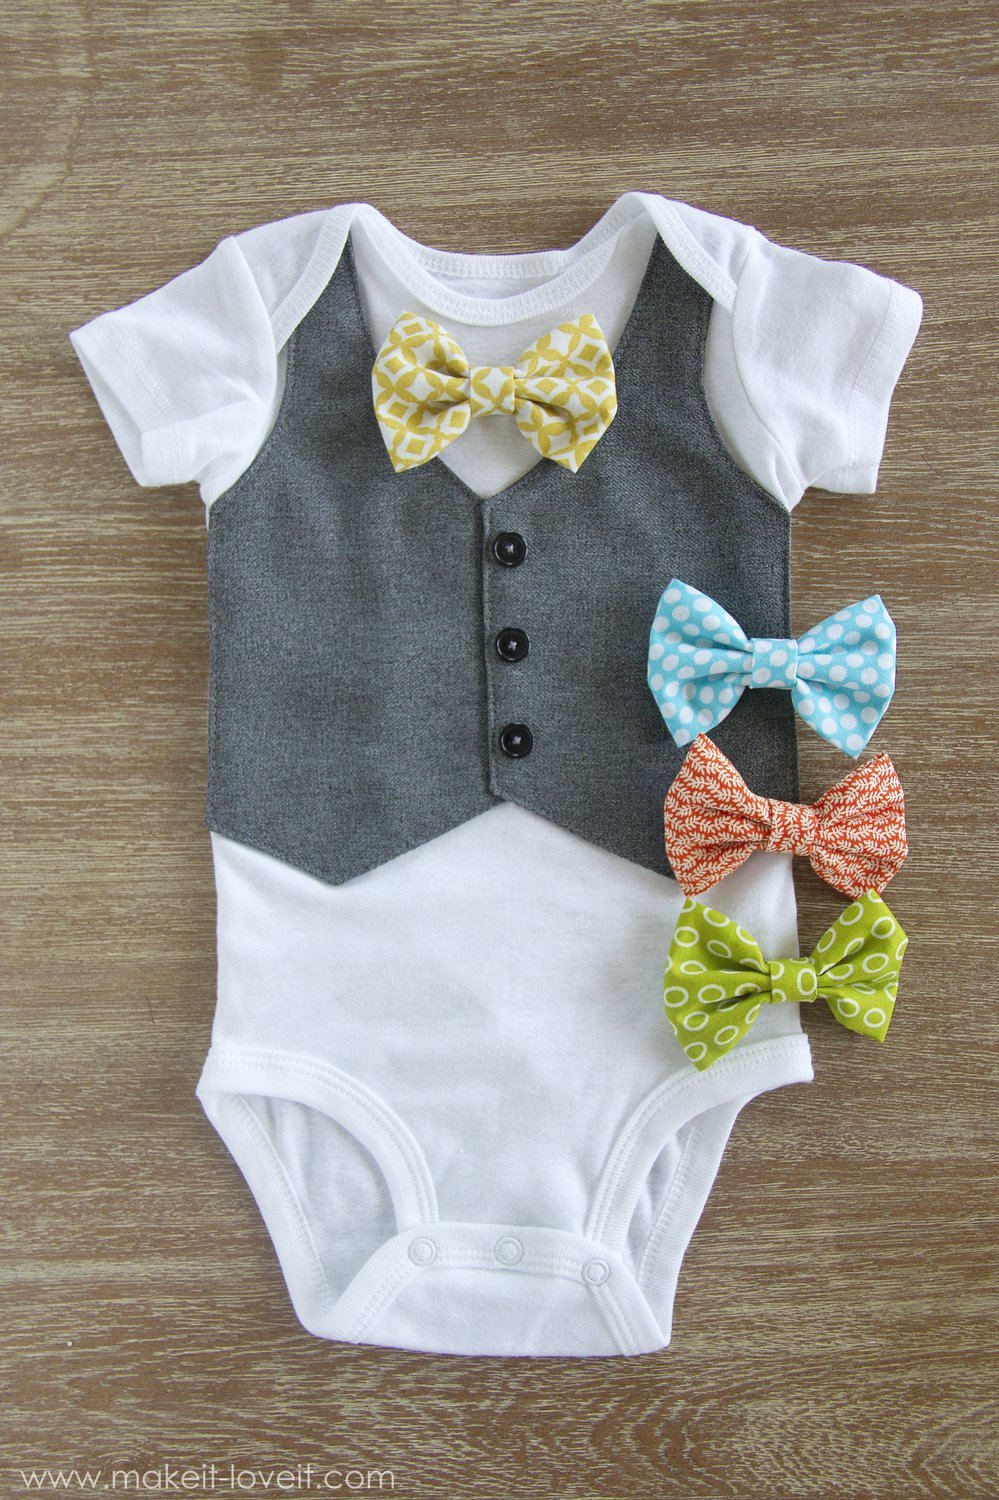 faux-vest-onesie-with-interchangeable-bowties-5